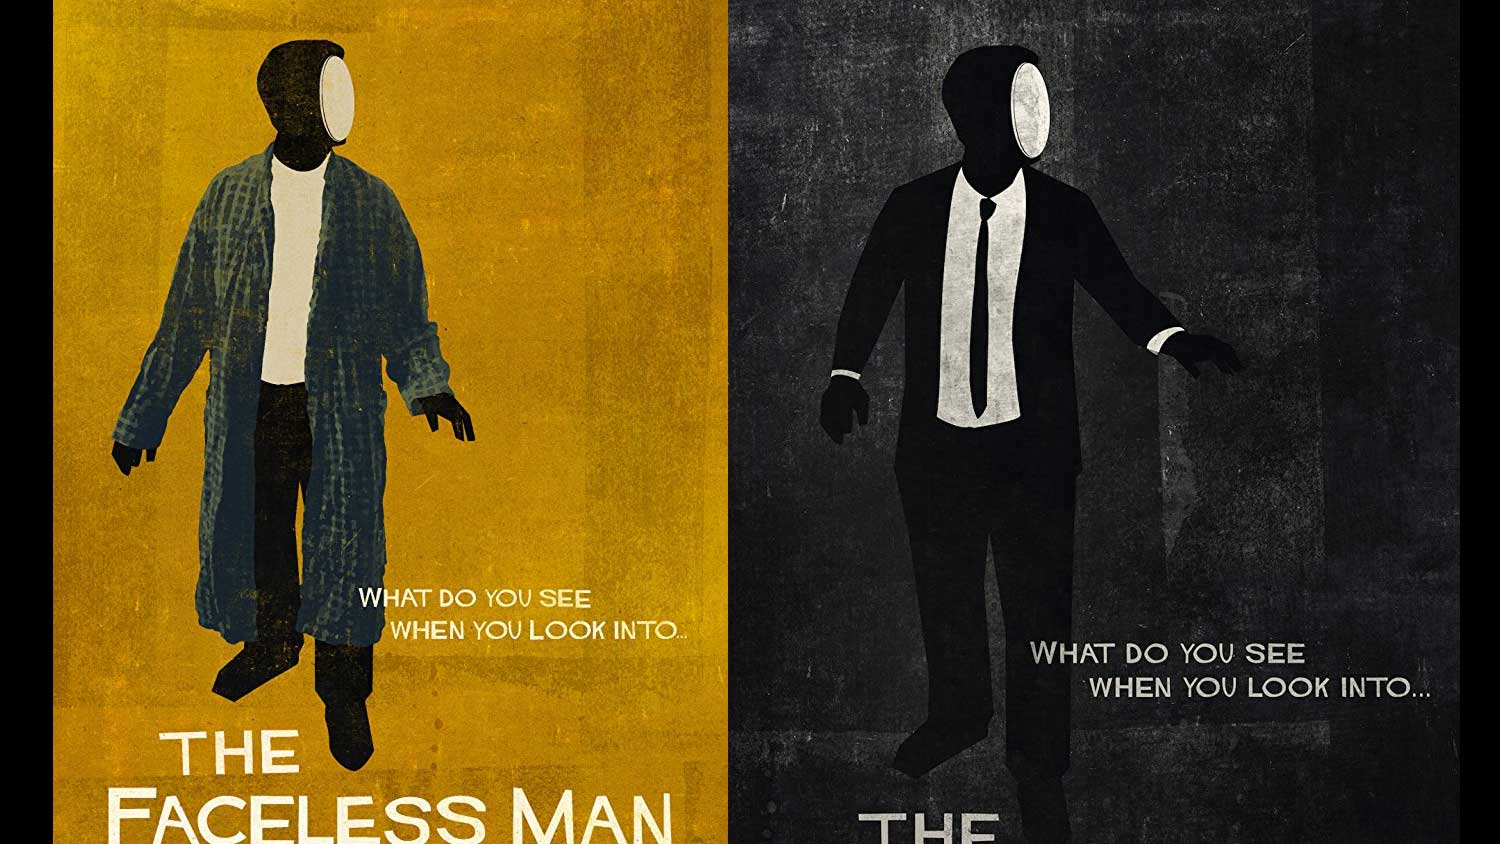 The Faceless Man Review – Sometimes We All Have To Do A Little Reflecting - OC Movie Reviews - Movie Reviews, Movie News, Documentary Reviews, Short Films, Short Film Reviews, Trailers, Movie Trailers, Interviews, film reviews, film news, hollywood, indie films, documentaries